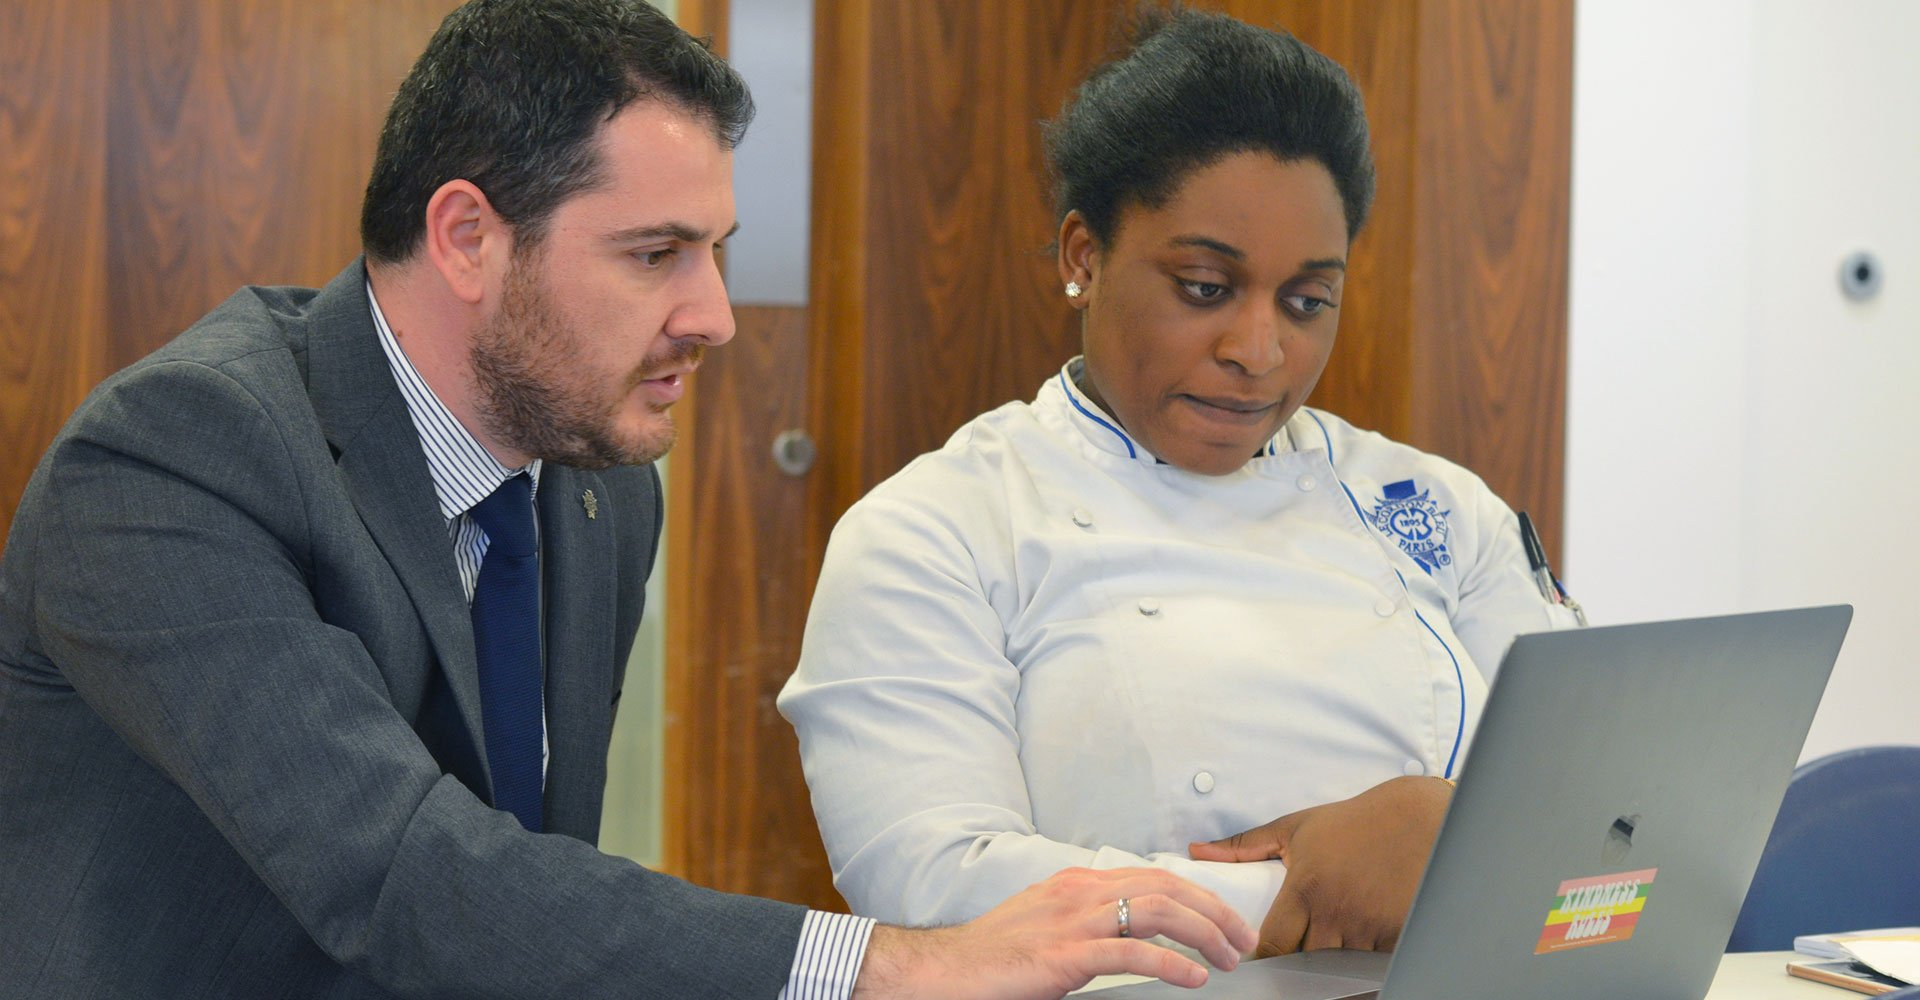 Senior lecturer Thomas Kyritsis - le cordon bleu london